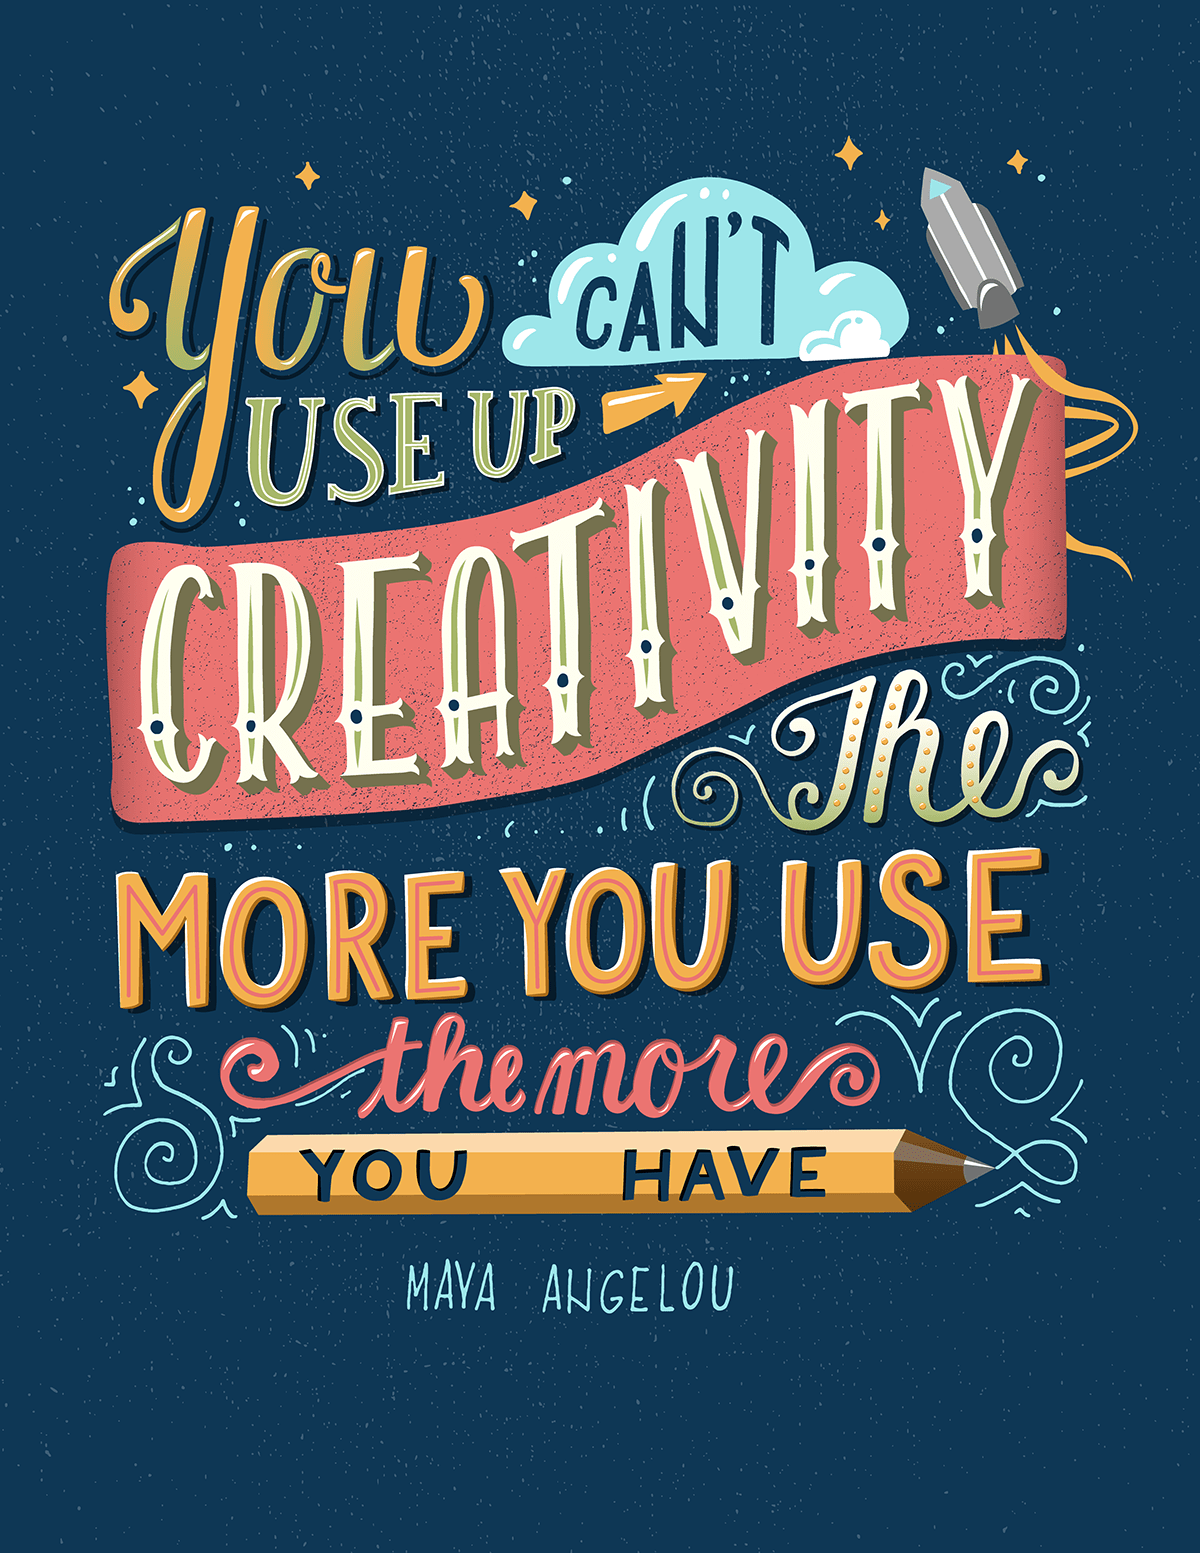 You can't use up your creativity - Maya Angelou  - per www.creativit.ee